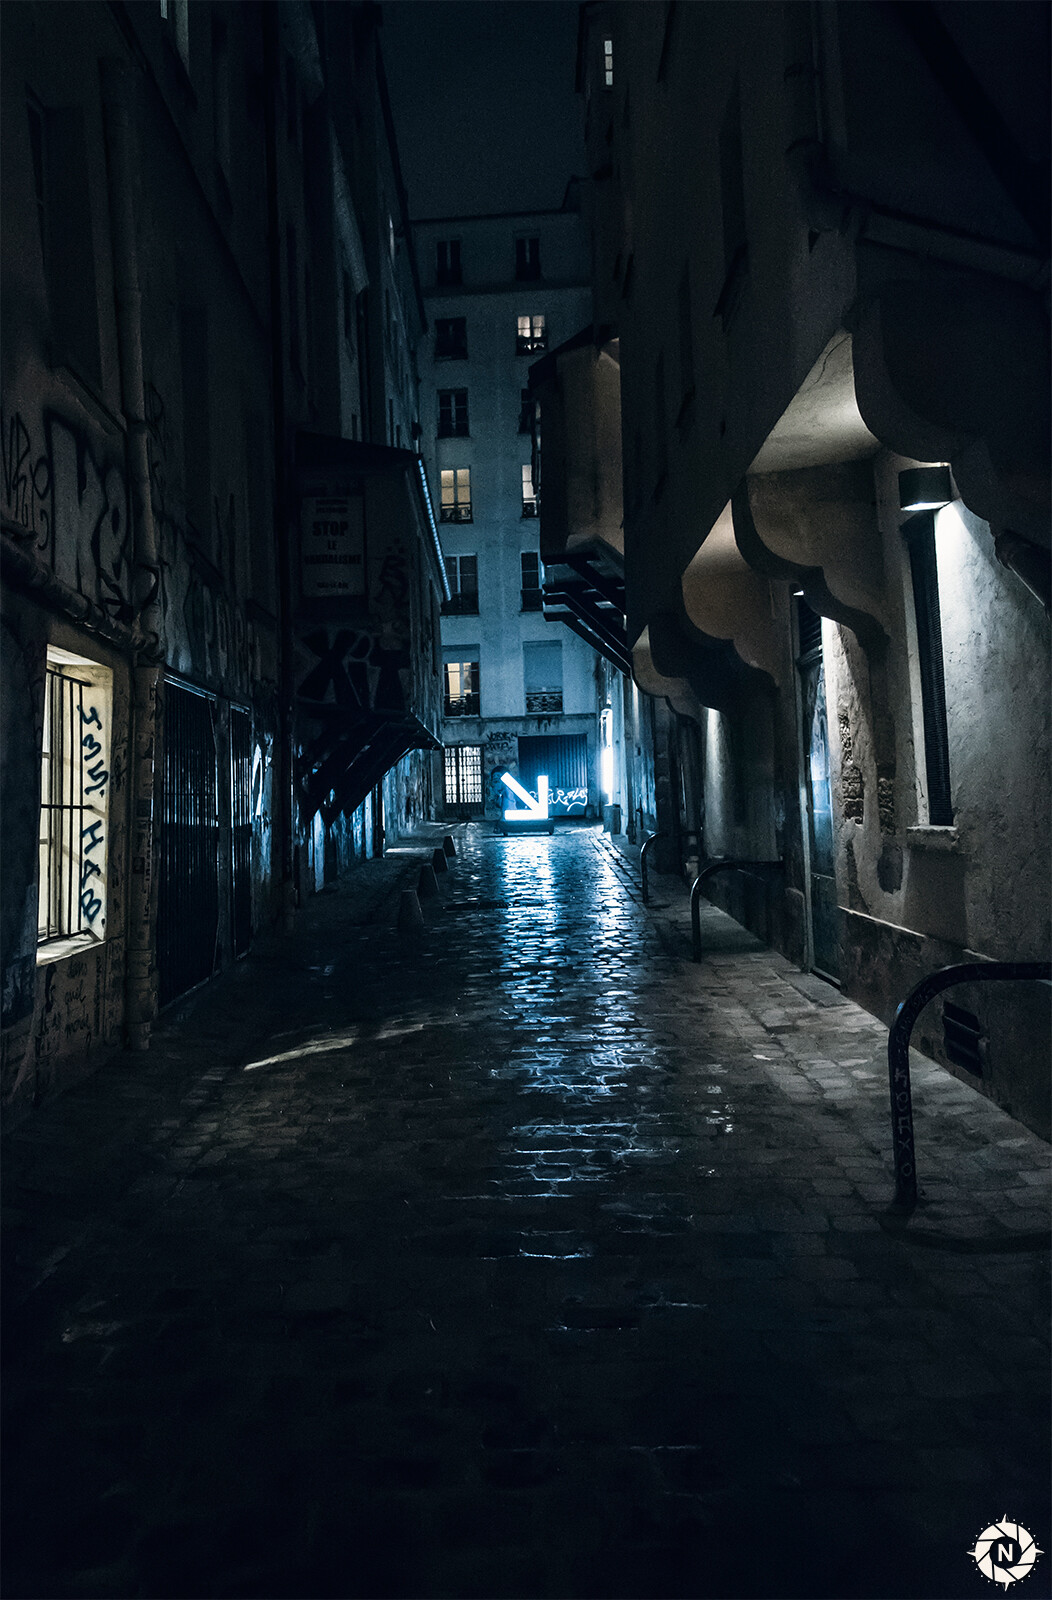 From the Mood Photo Pack: Paris By Night  https://www.artstation.com/a/165871